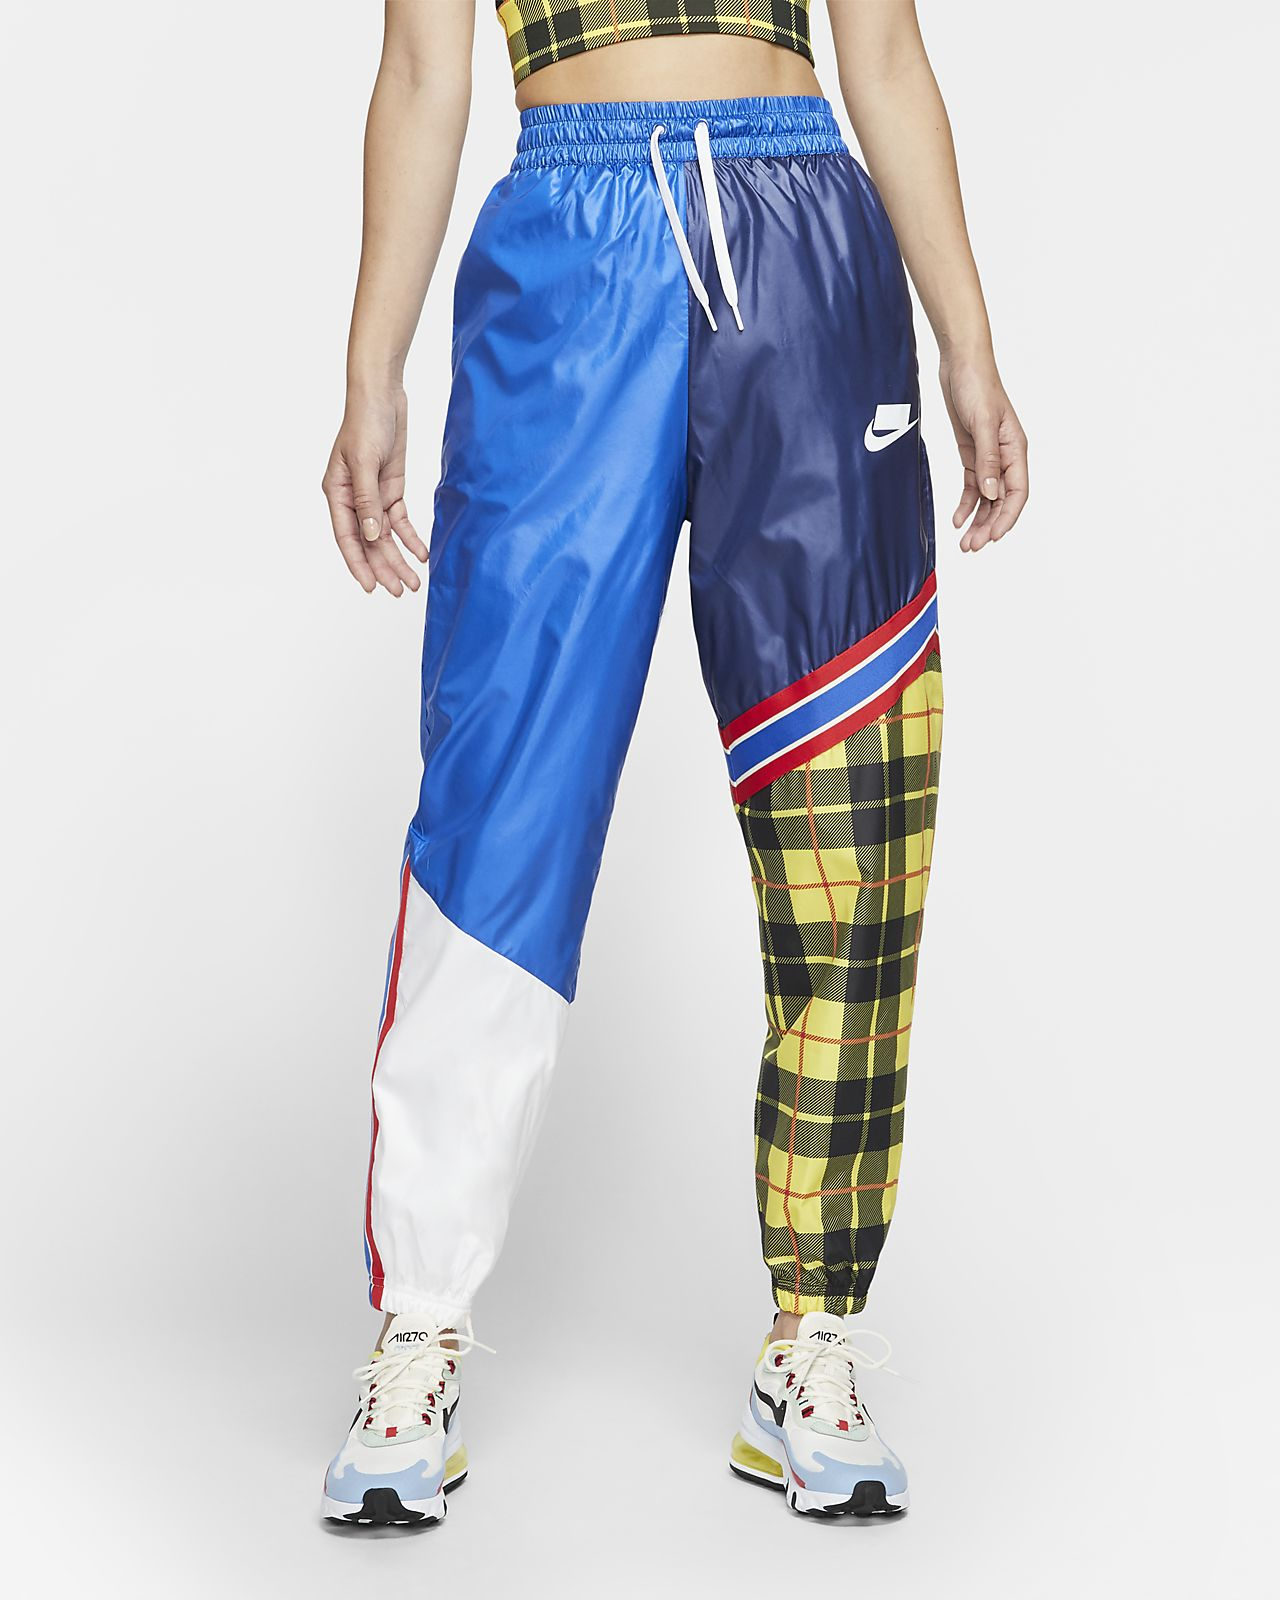 Nike Sportswear NSW Women's Woven Plaid Pants